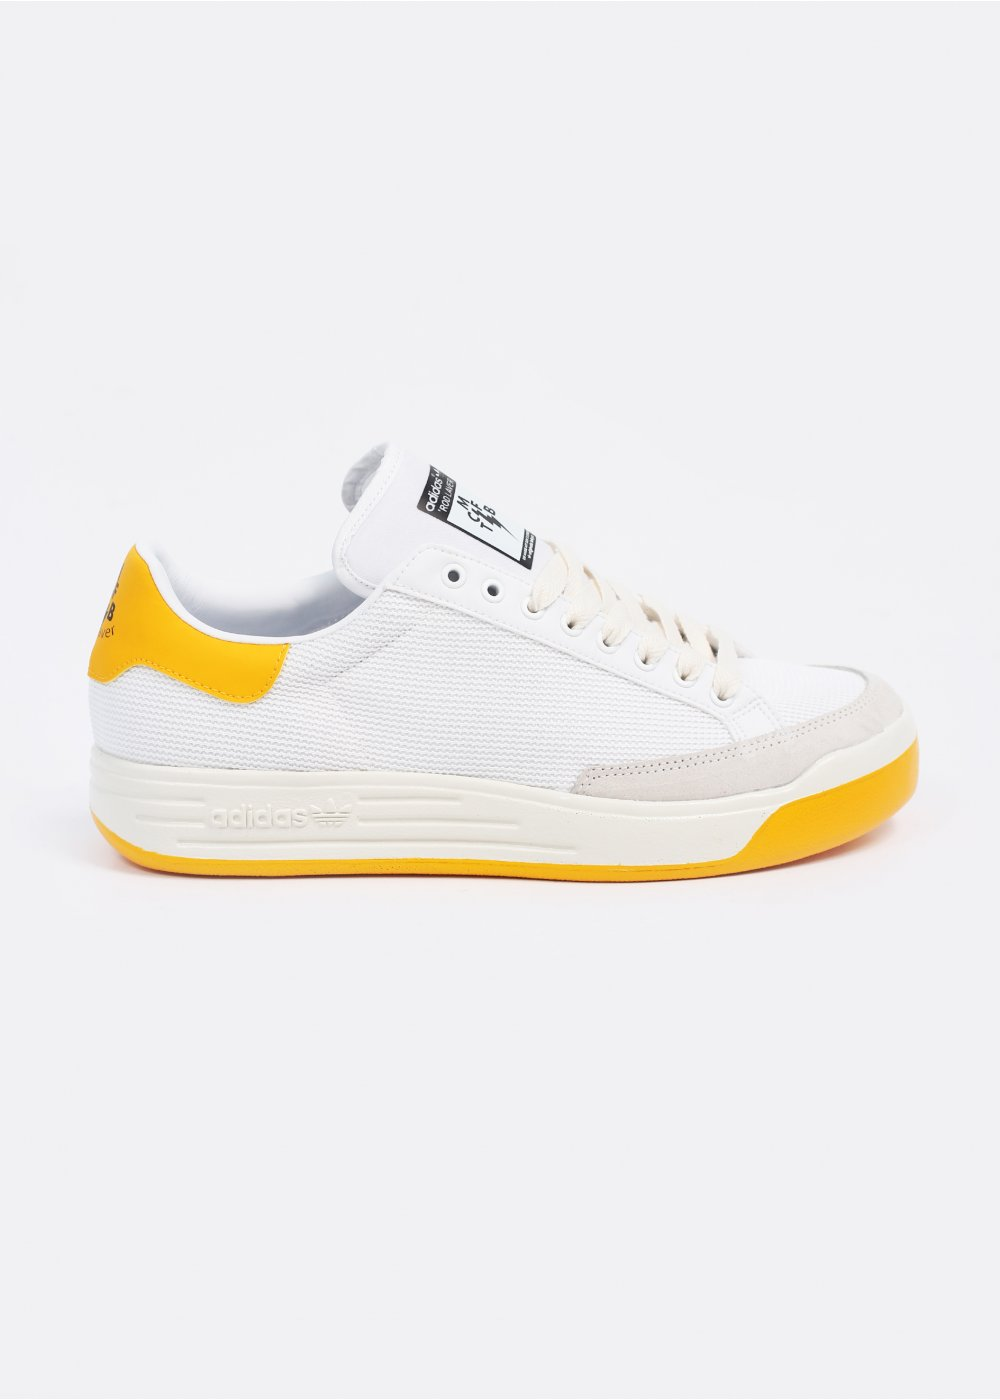 Adidas Originals x Mark Mc Nairy Basket ROD LAVER 84 LAB